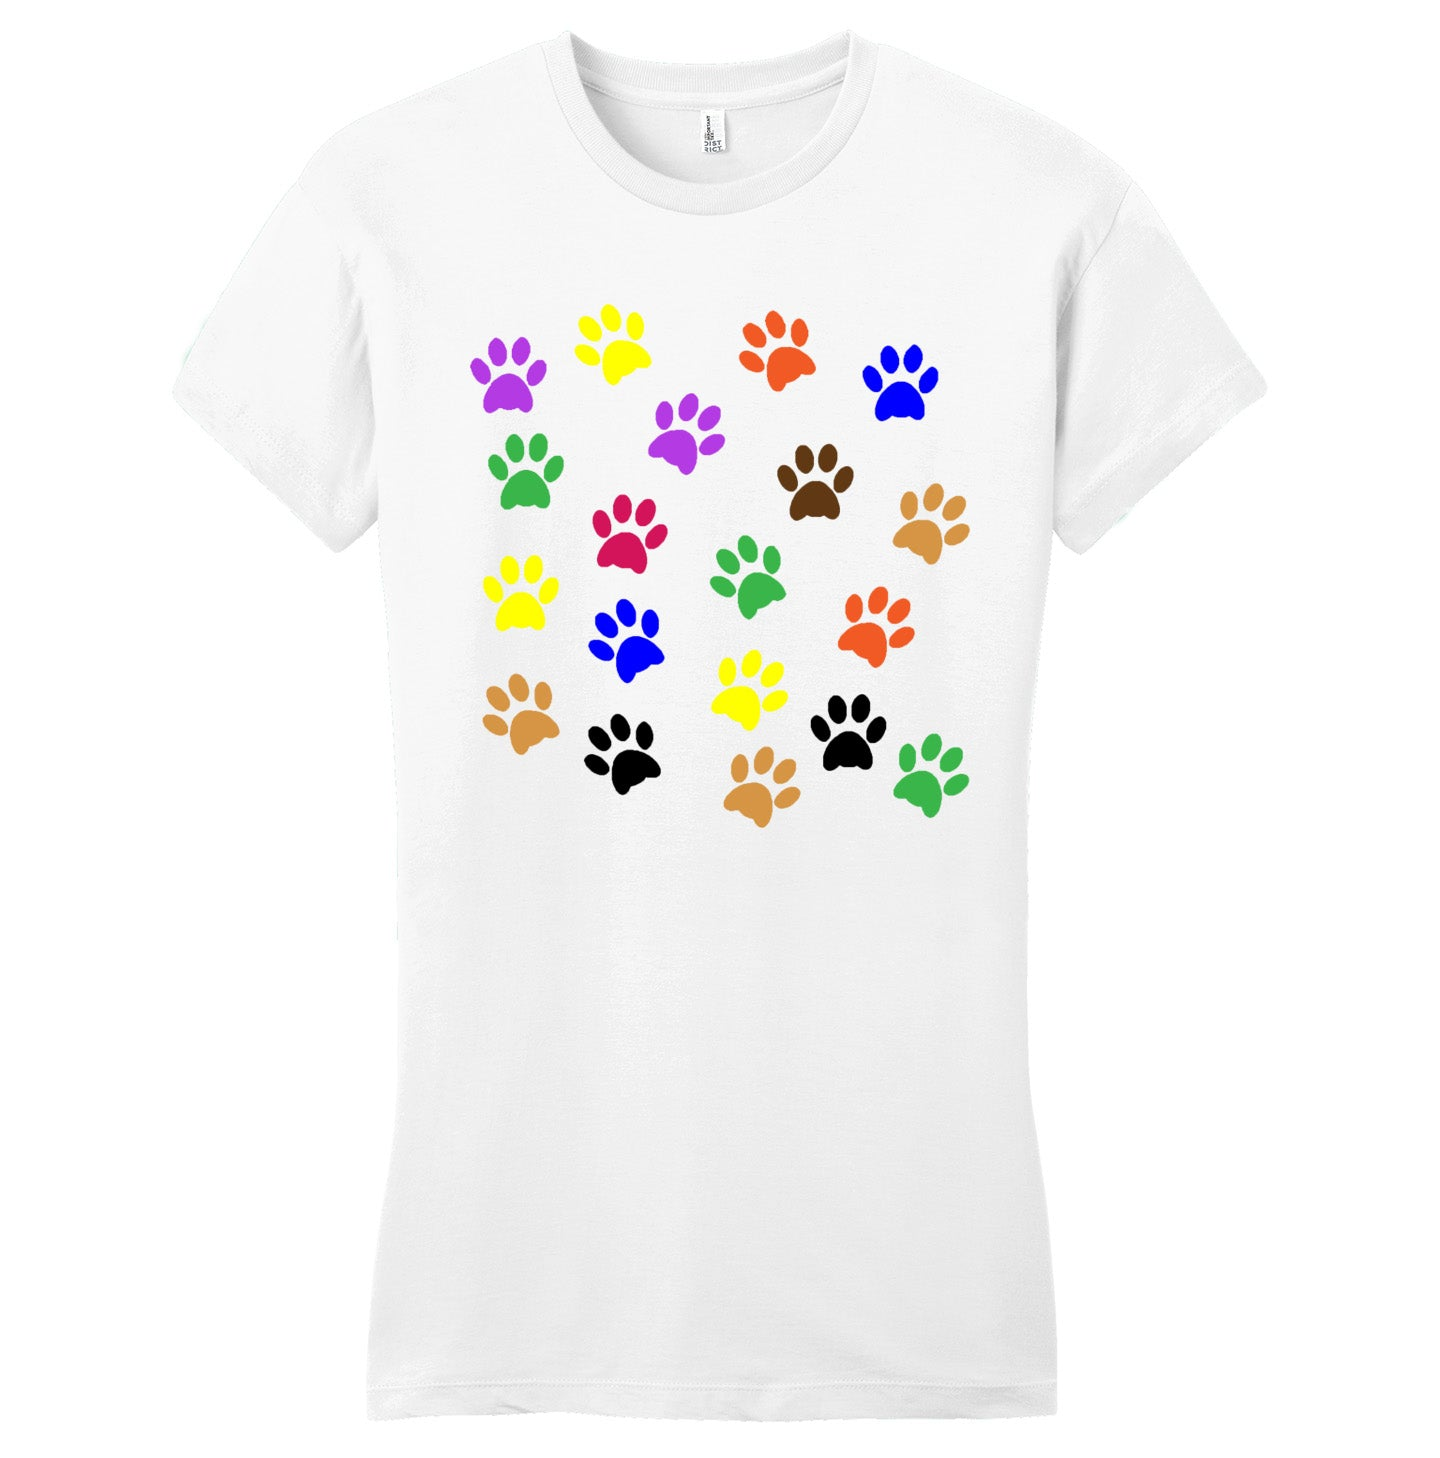 Colorful Paw Prints - Women's Fitted T-Shirt